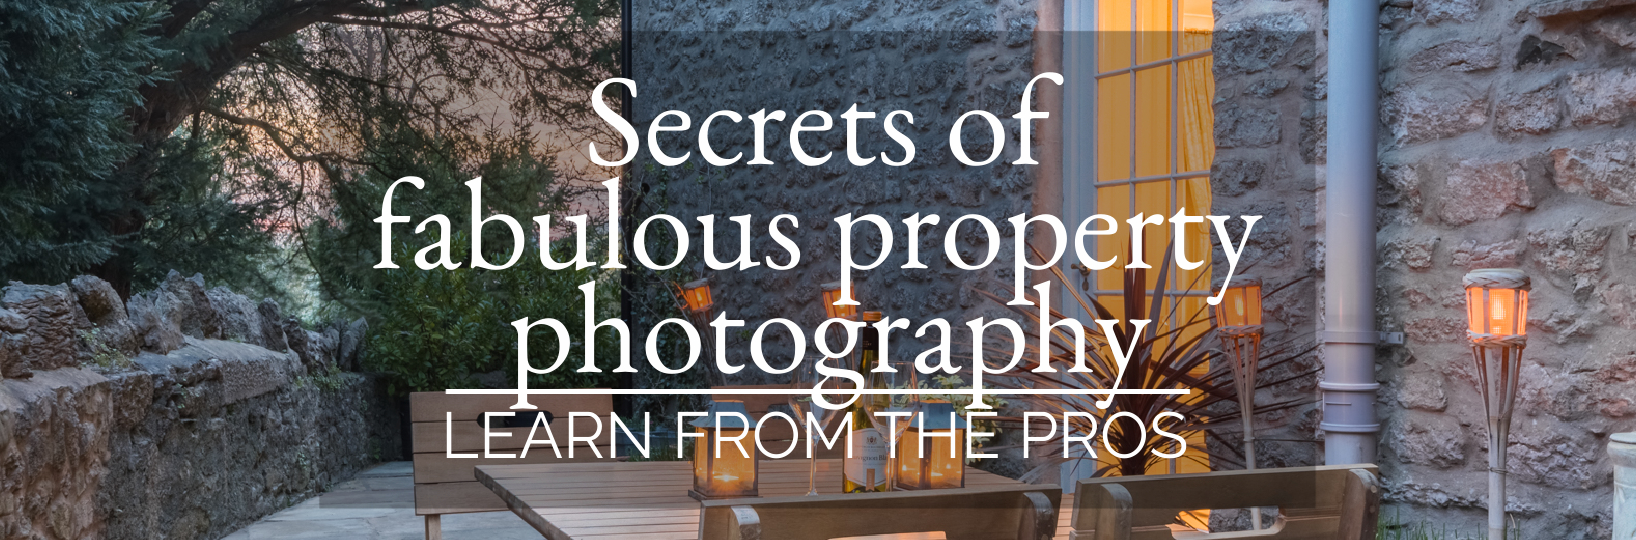 facebook-cover-art-secrets-of-fabulous-property-photography